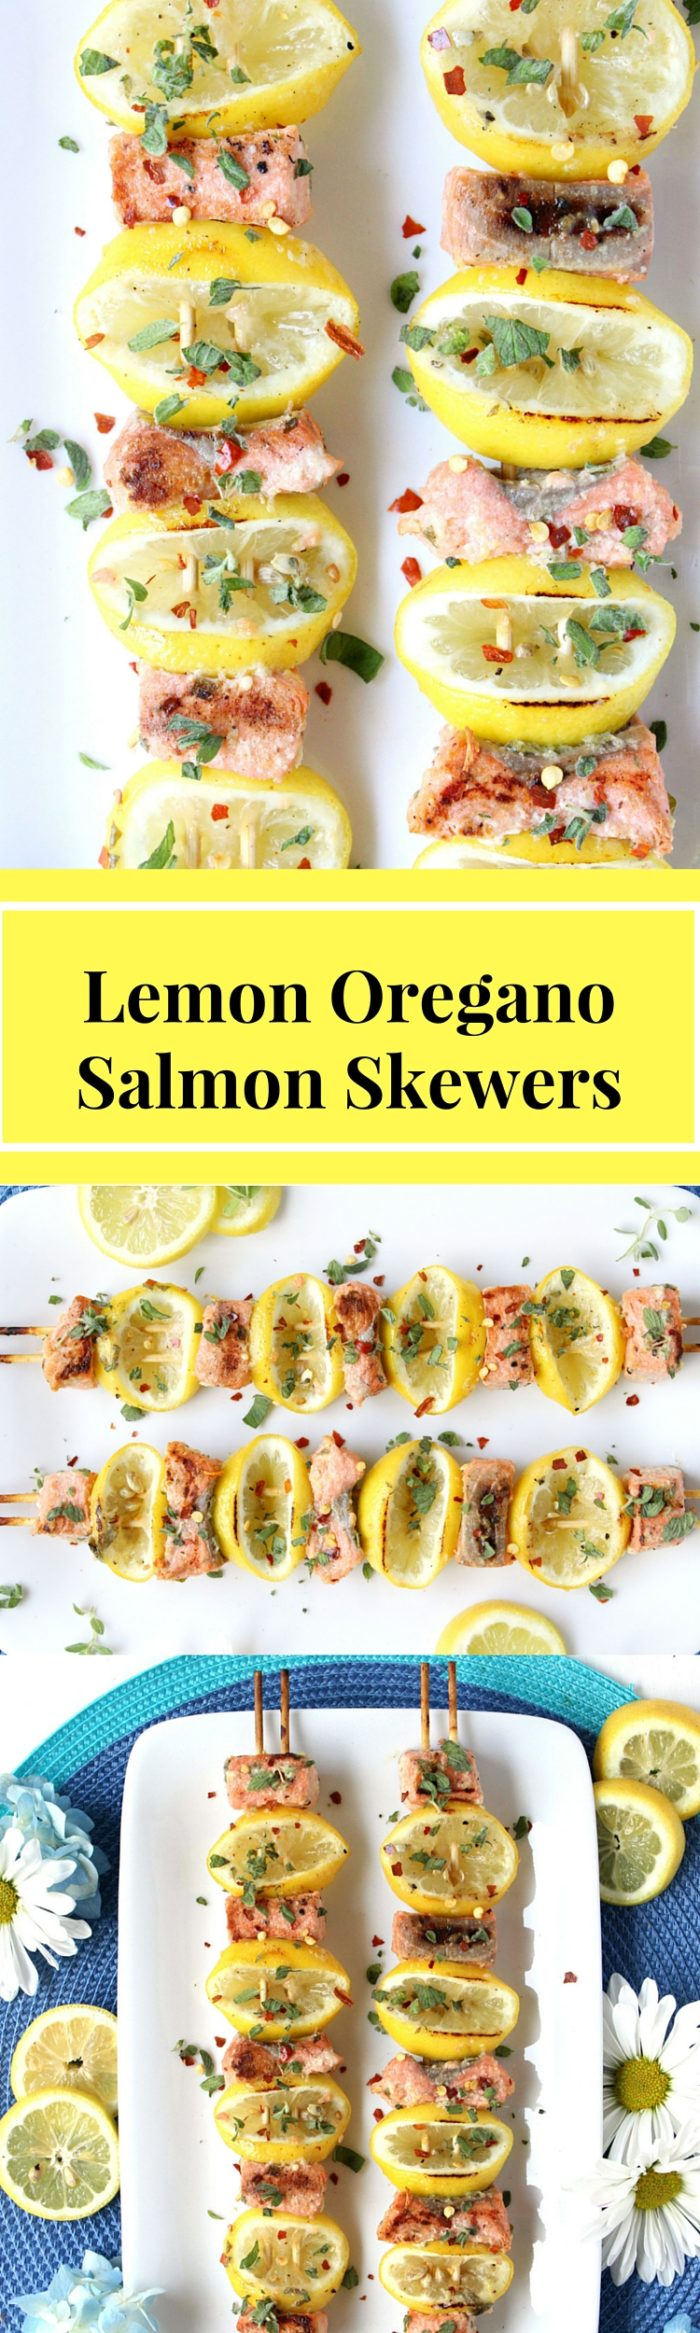 Lemon Oregano Salmon Skewers